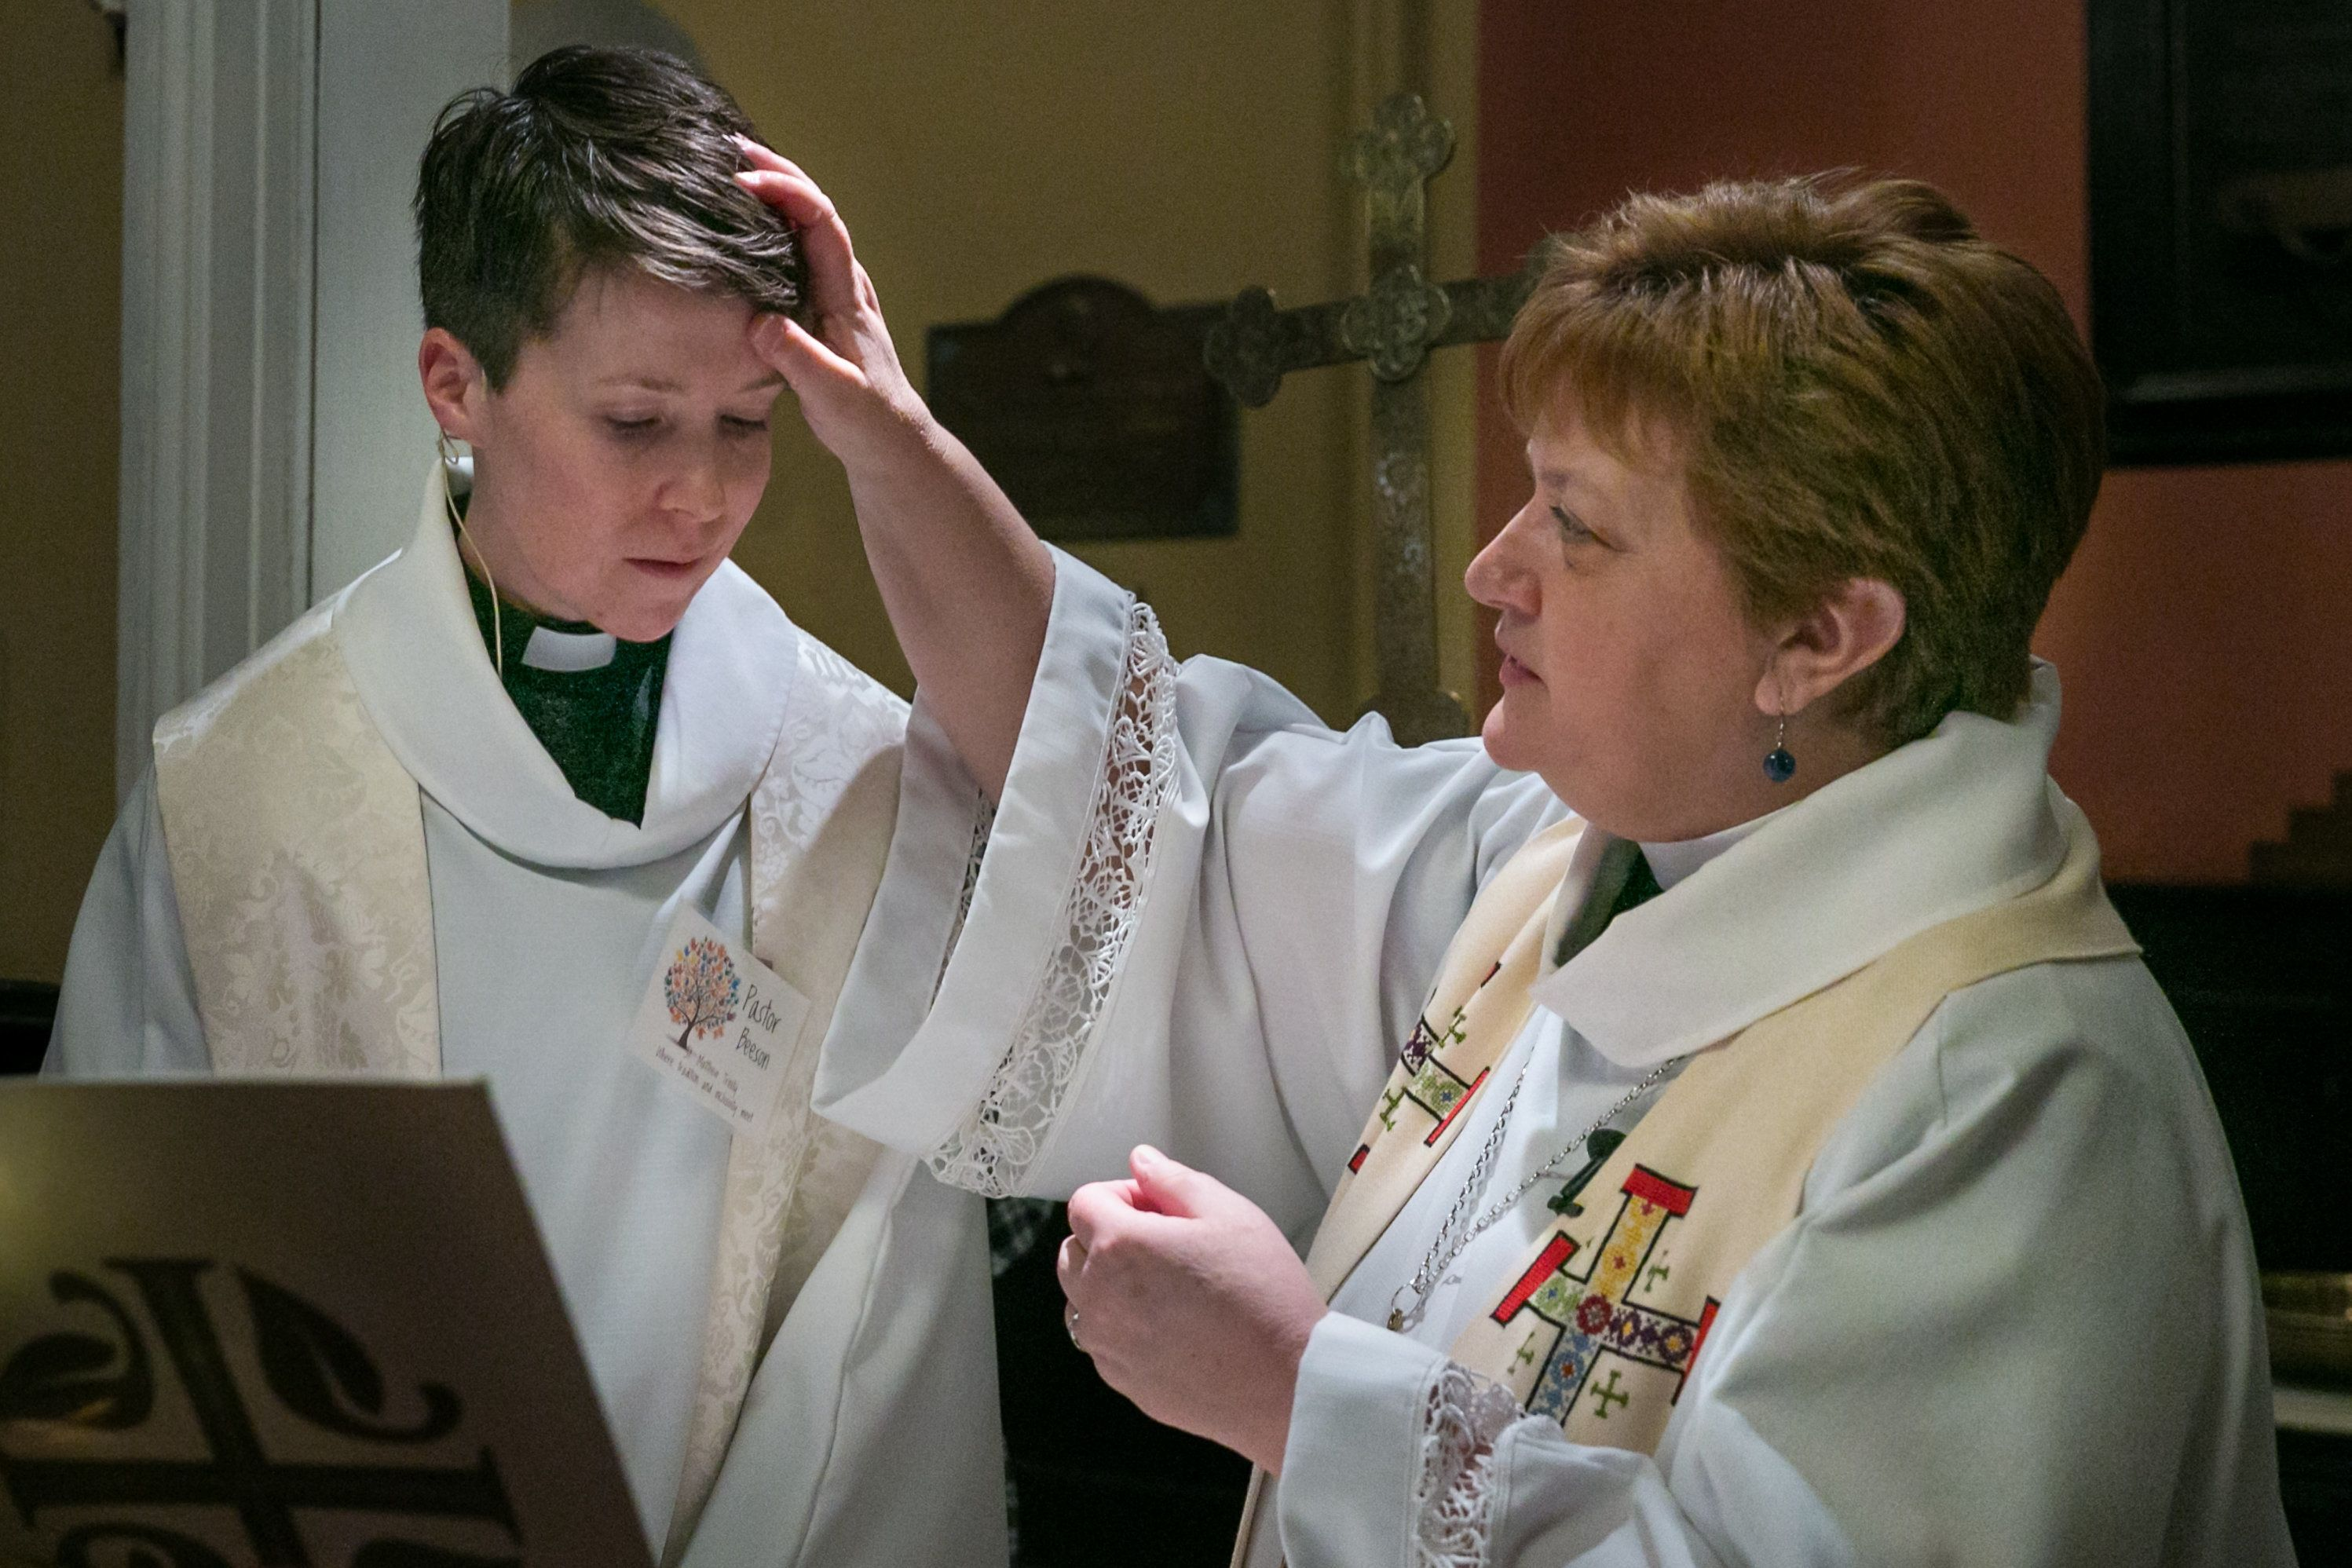 New Jersey Synod Bishop Tracie Bartholomew blesses Rev. Peter Beeson at St. Matthew Trinity Lutheran Church's baptismal